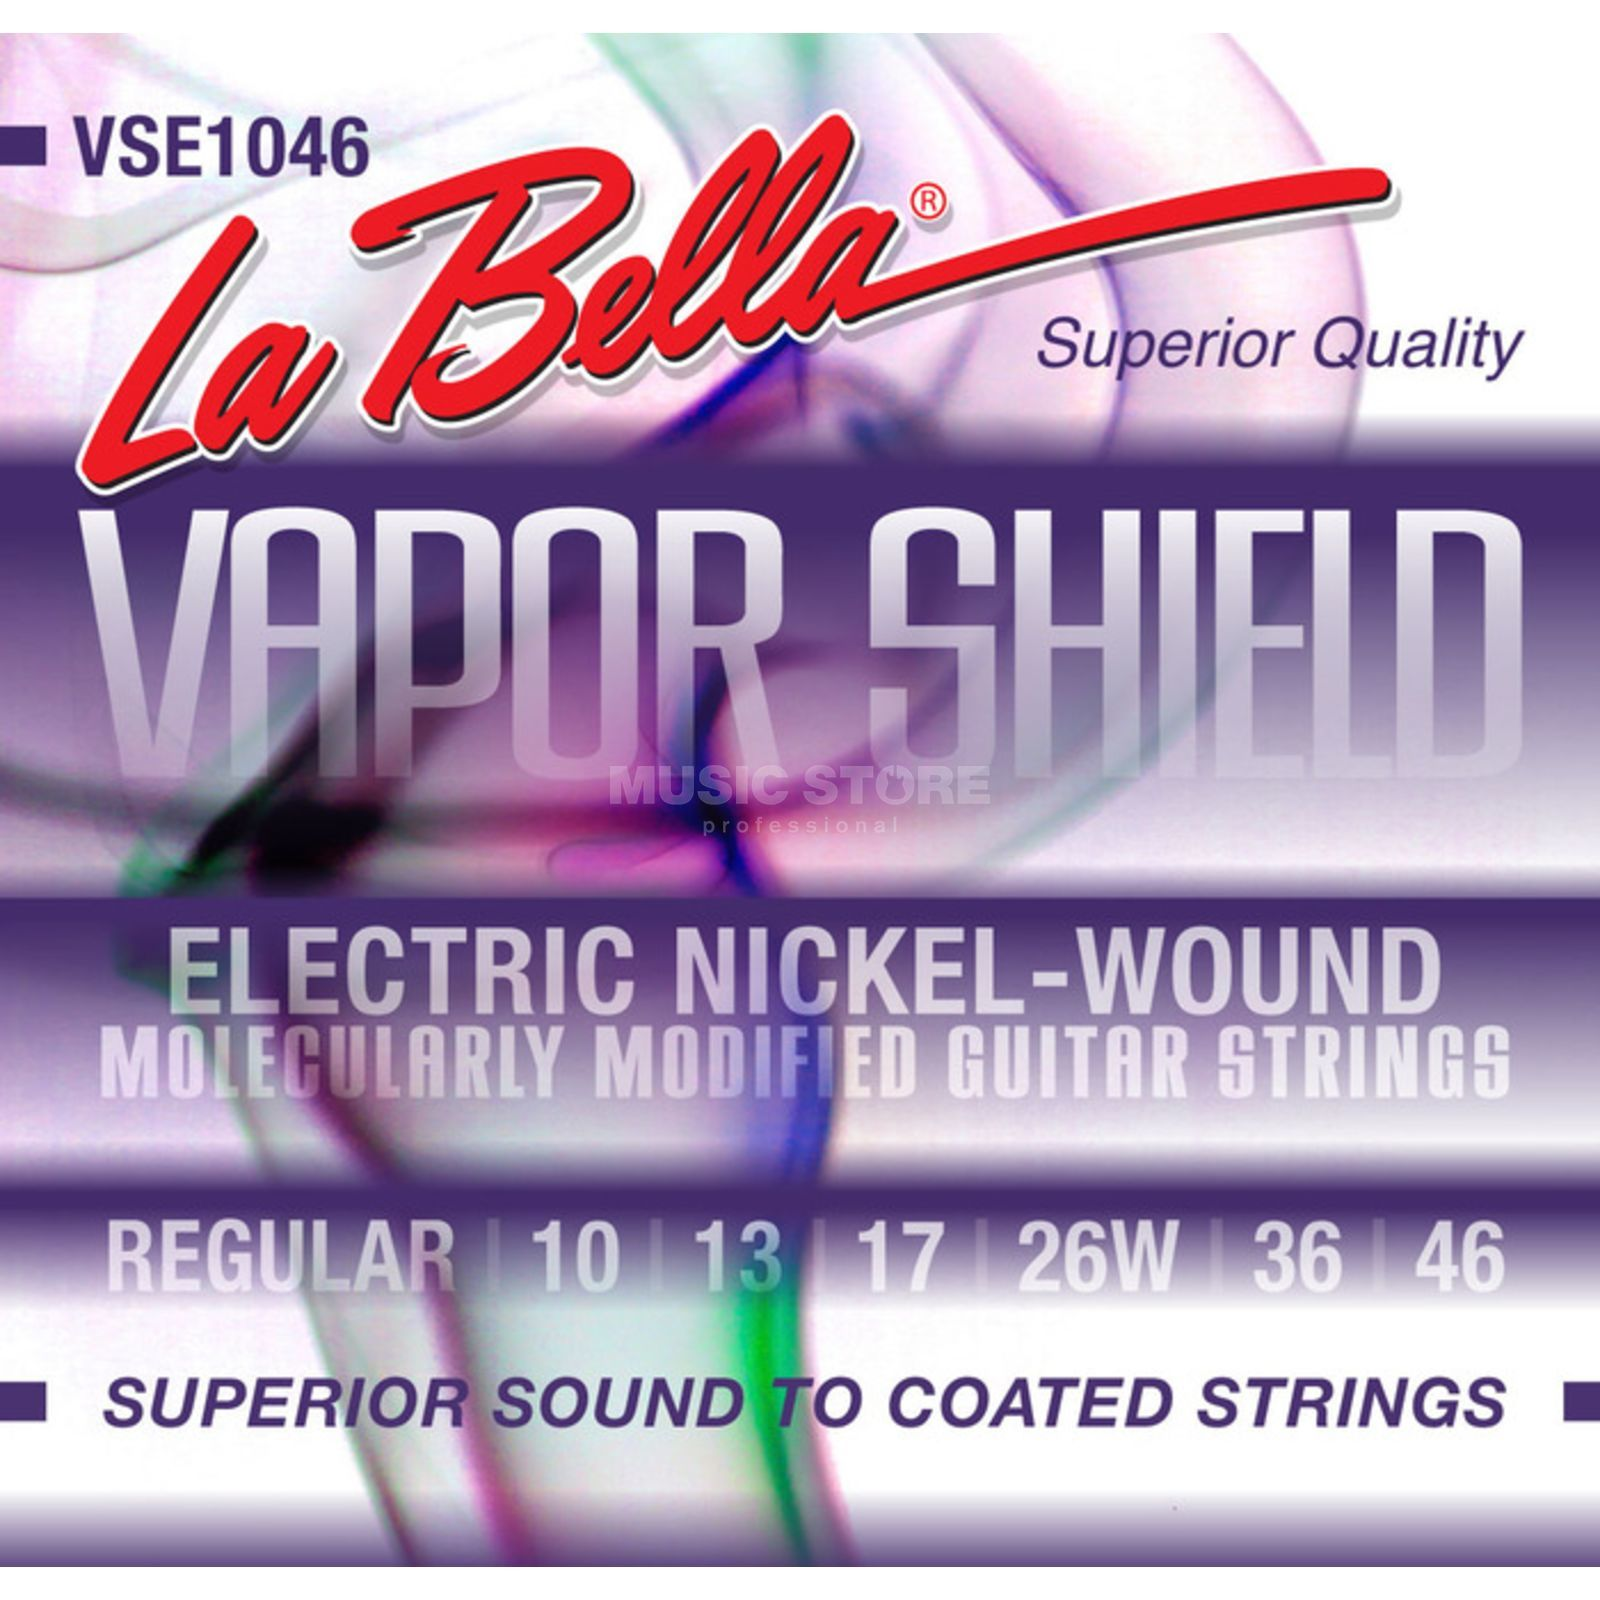 La Bella VSE1046 10-46 Vapor Shield E-Guitar Strings R Produktbillede